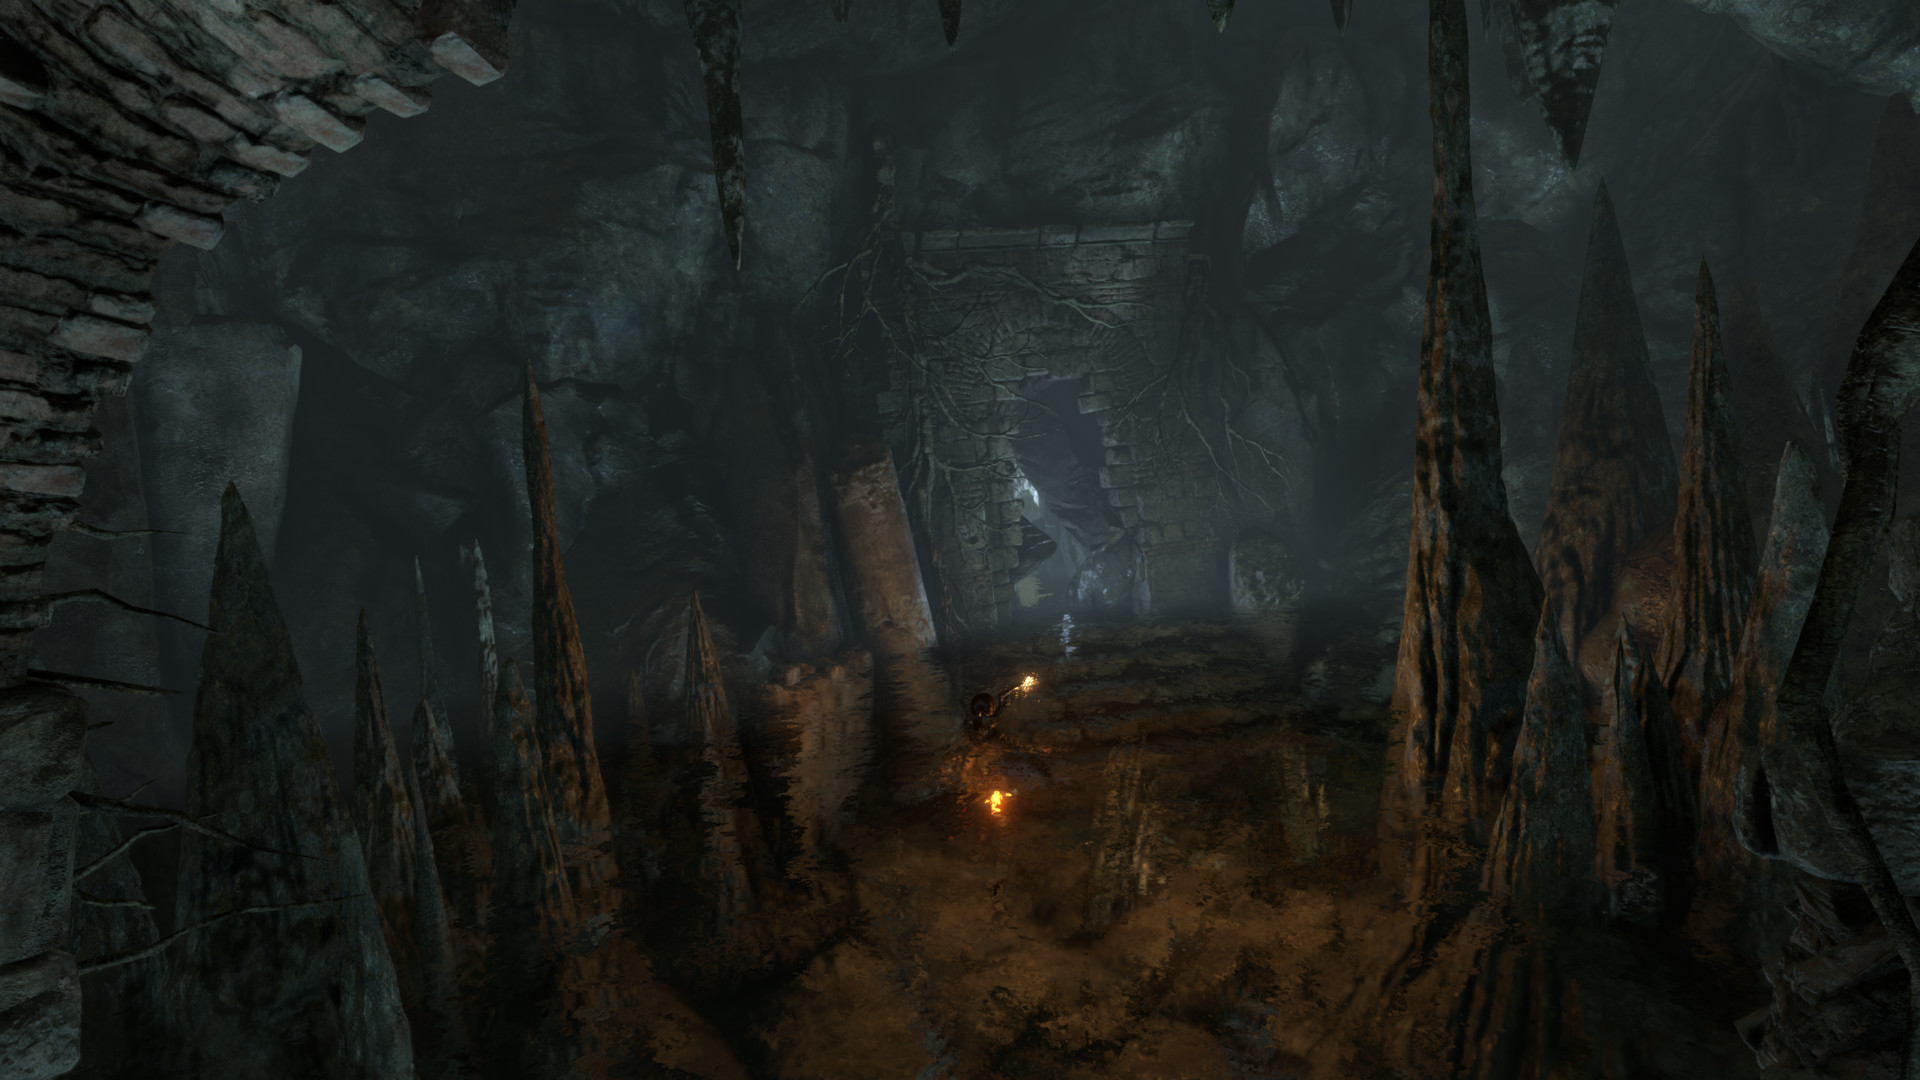 Akash dholakia rise of the tomb raider v1 0 build 668 1 64 7 17 2016 4 51 16 pm